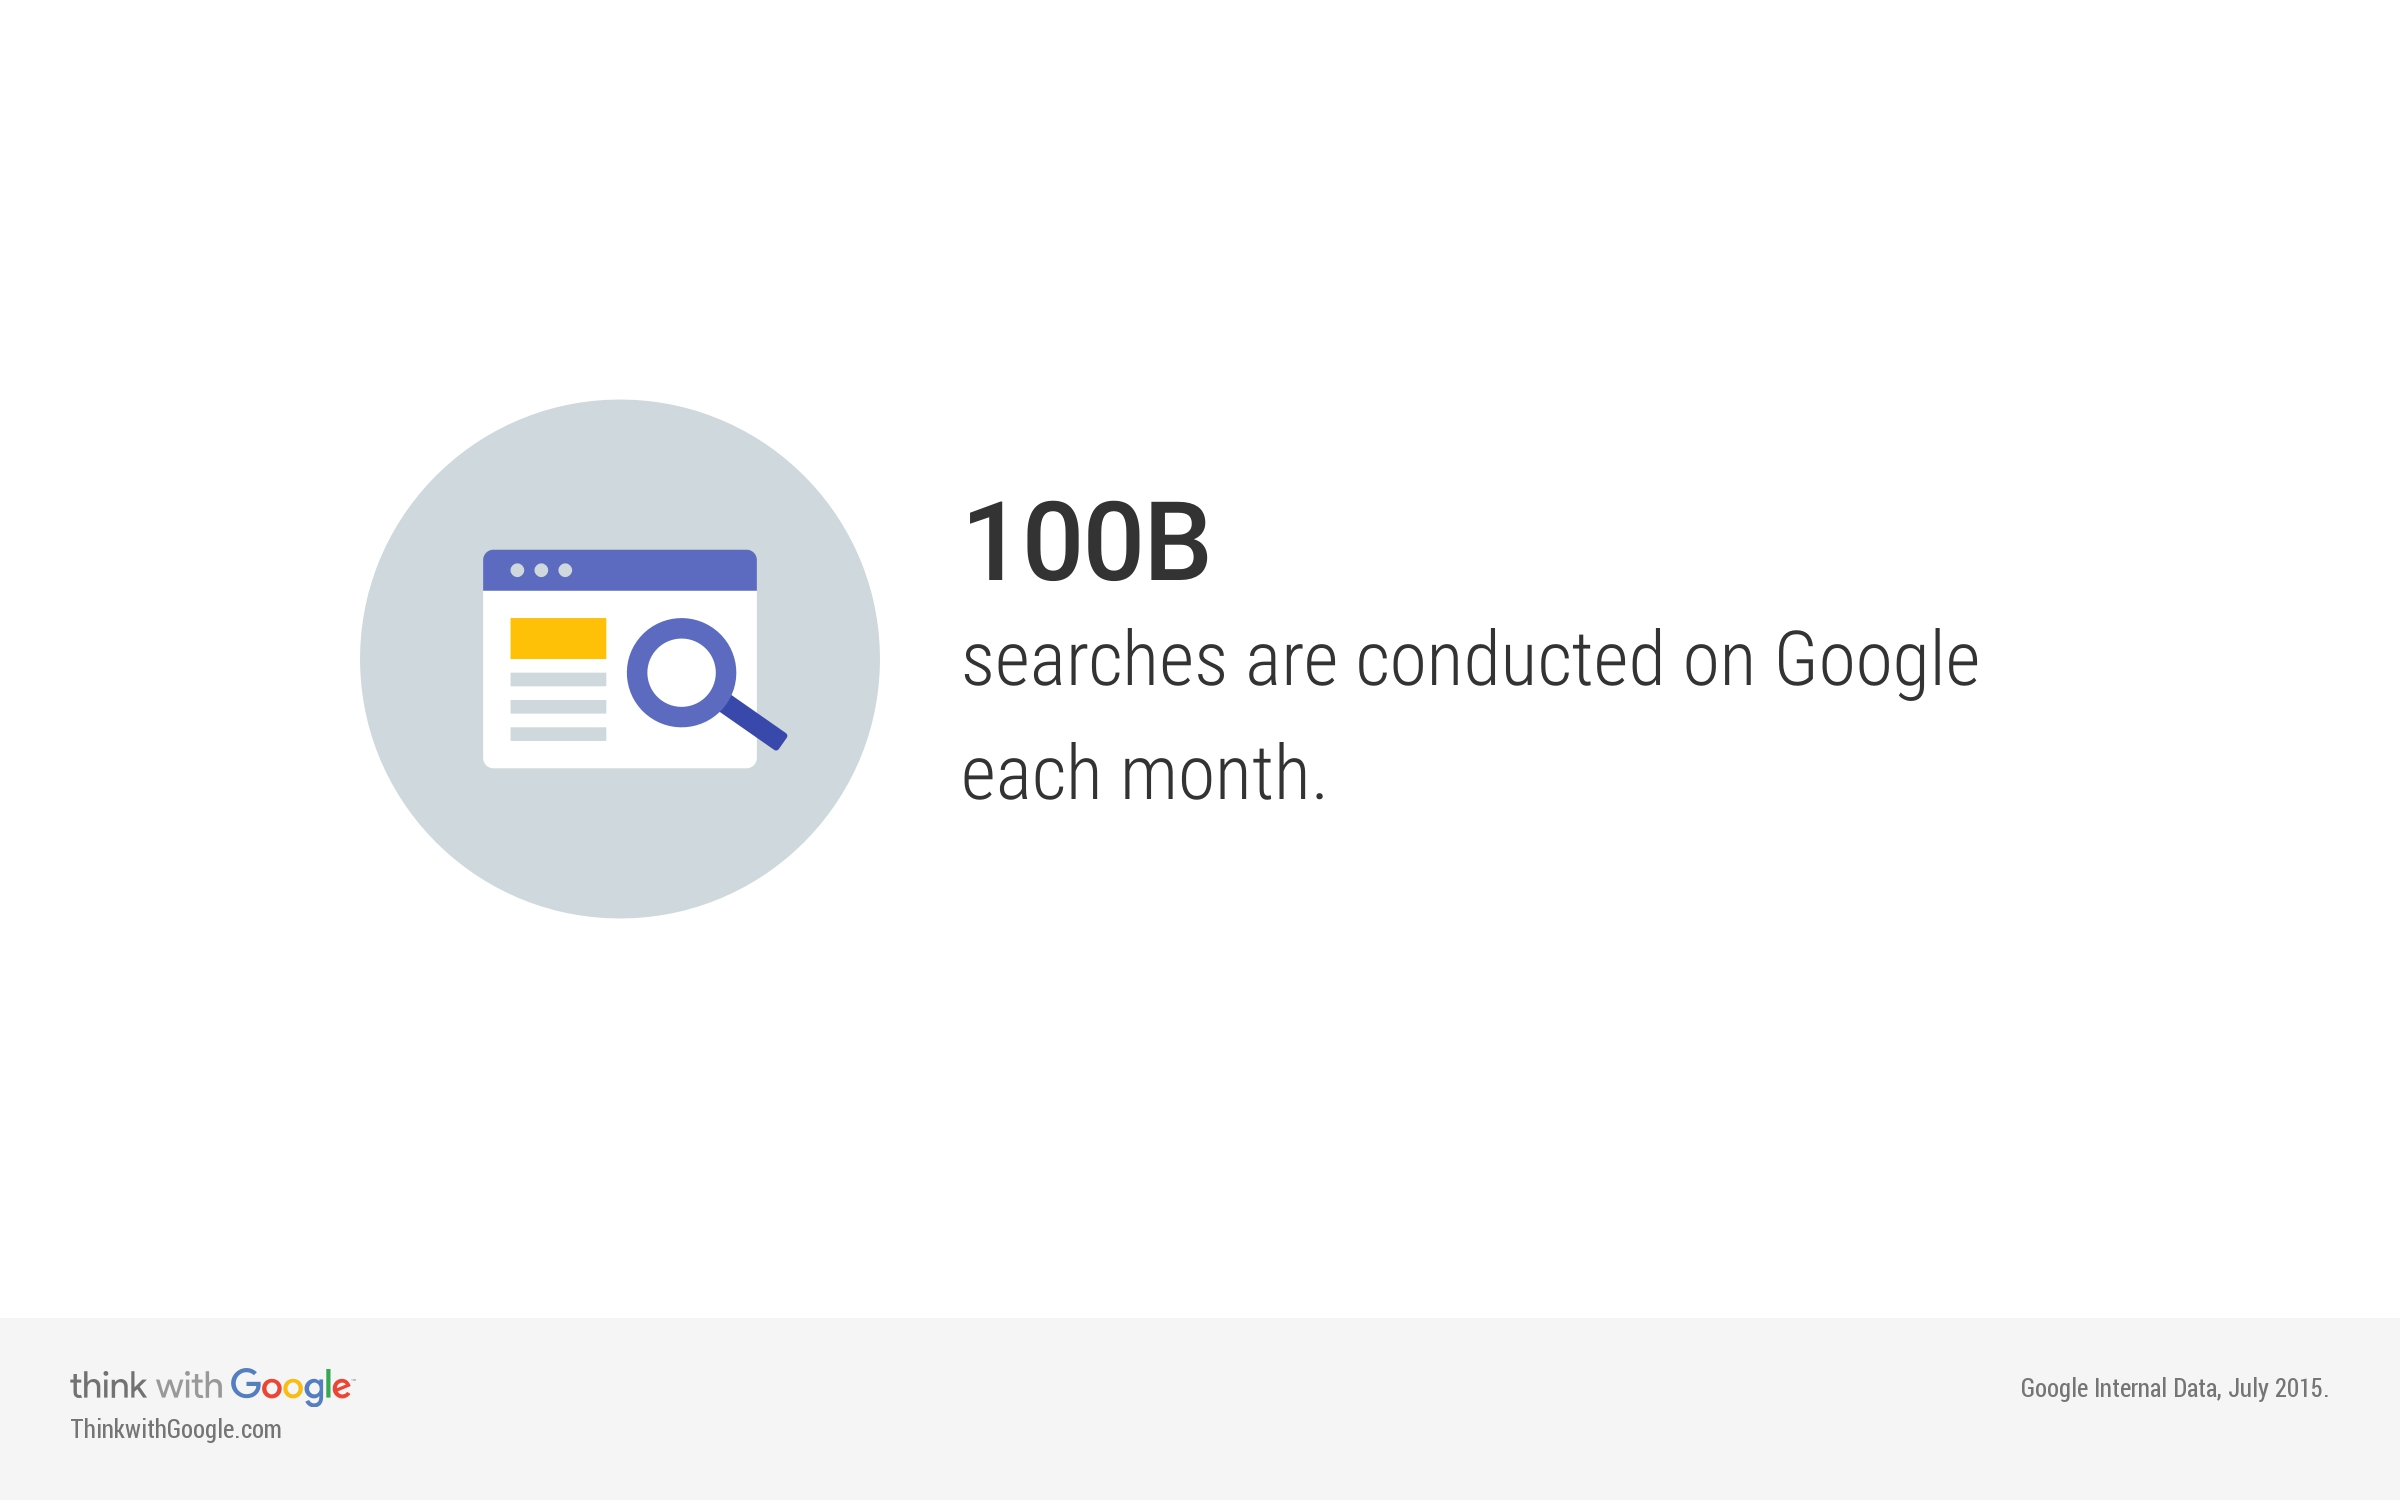 There are over 100 billion searches conducted on Google each month.